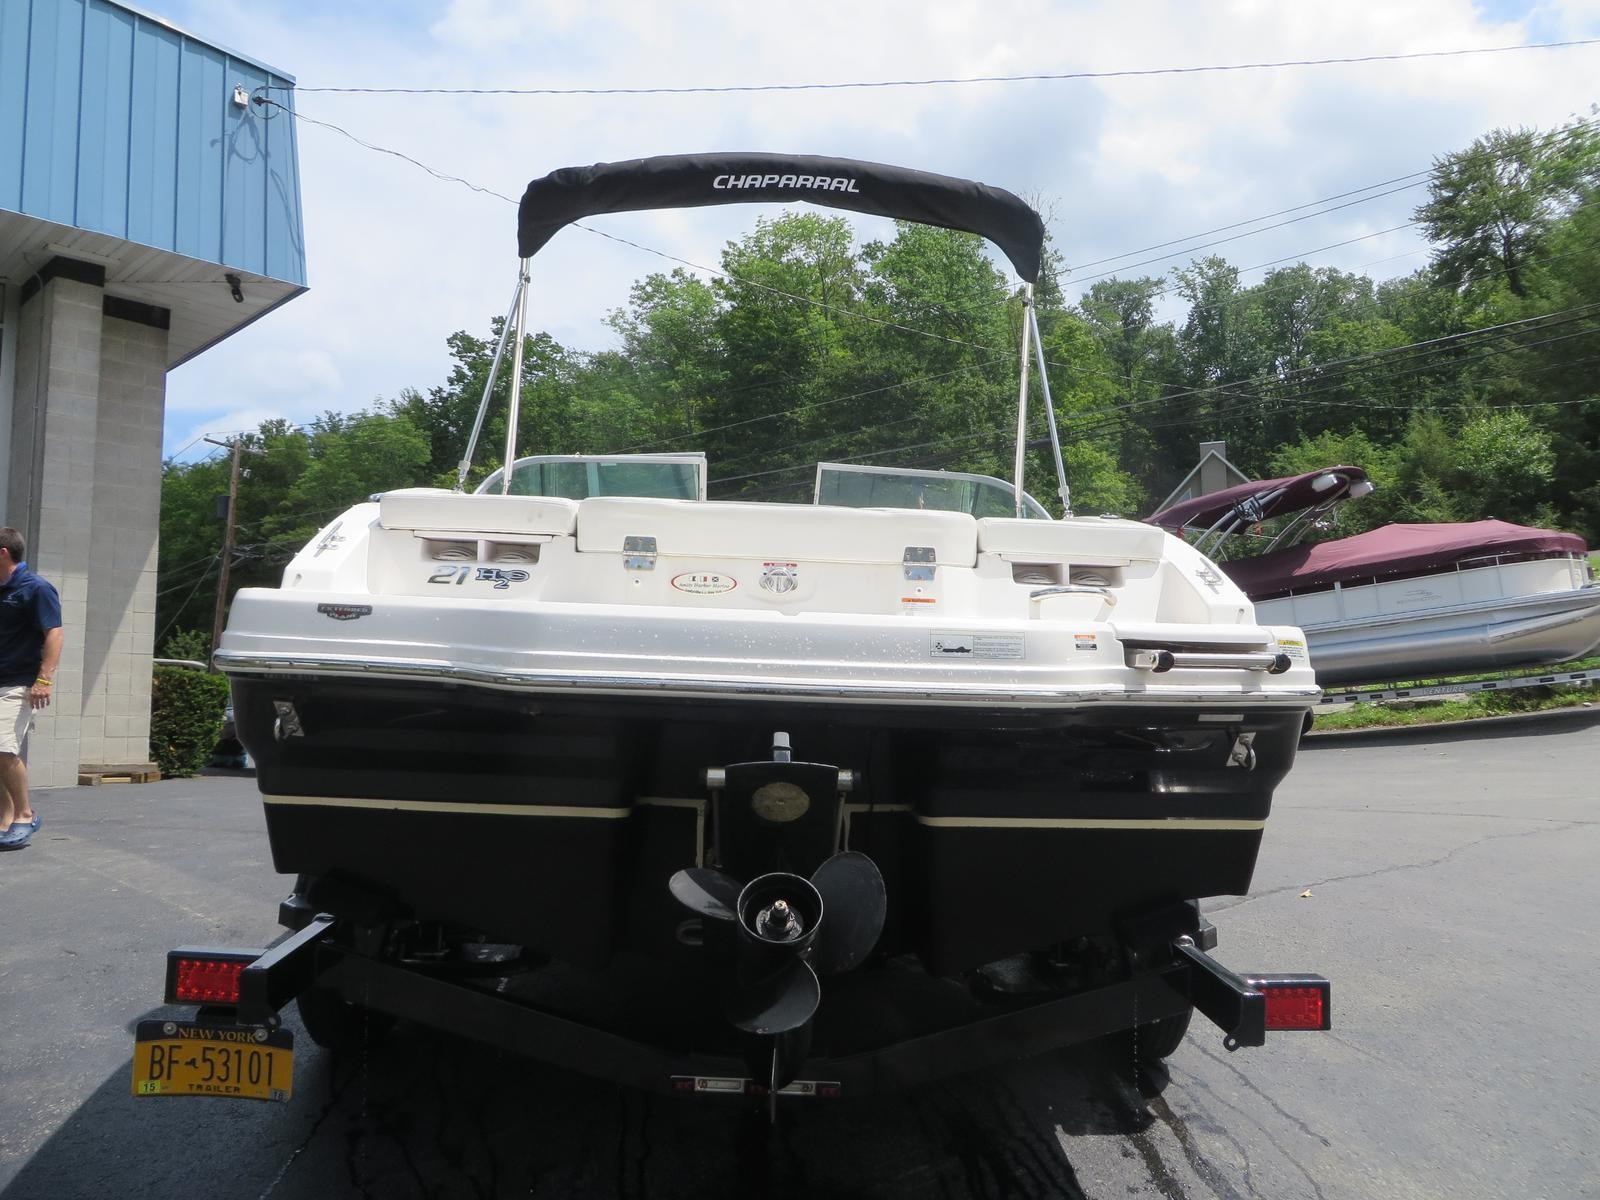 2015 Chaparral 215 H20 Sport For Sale In Greentown Pa Lighthouse Boat Fuse Box Img 72771